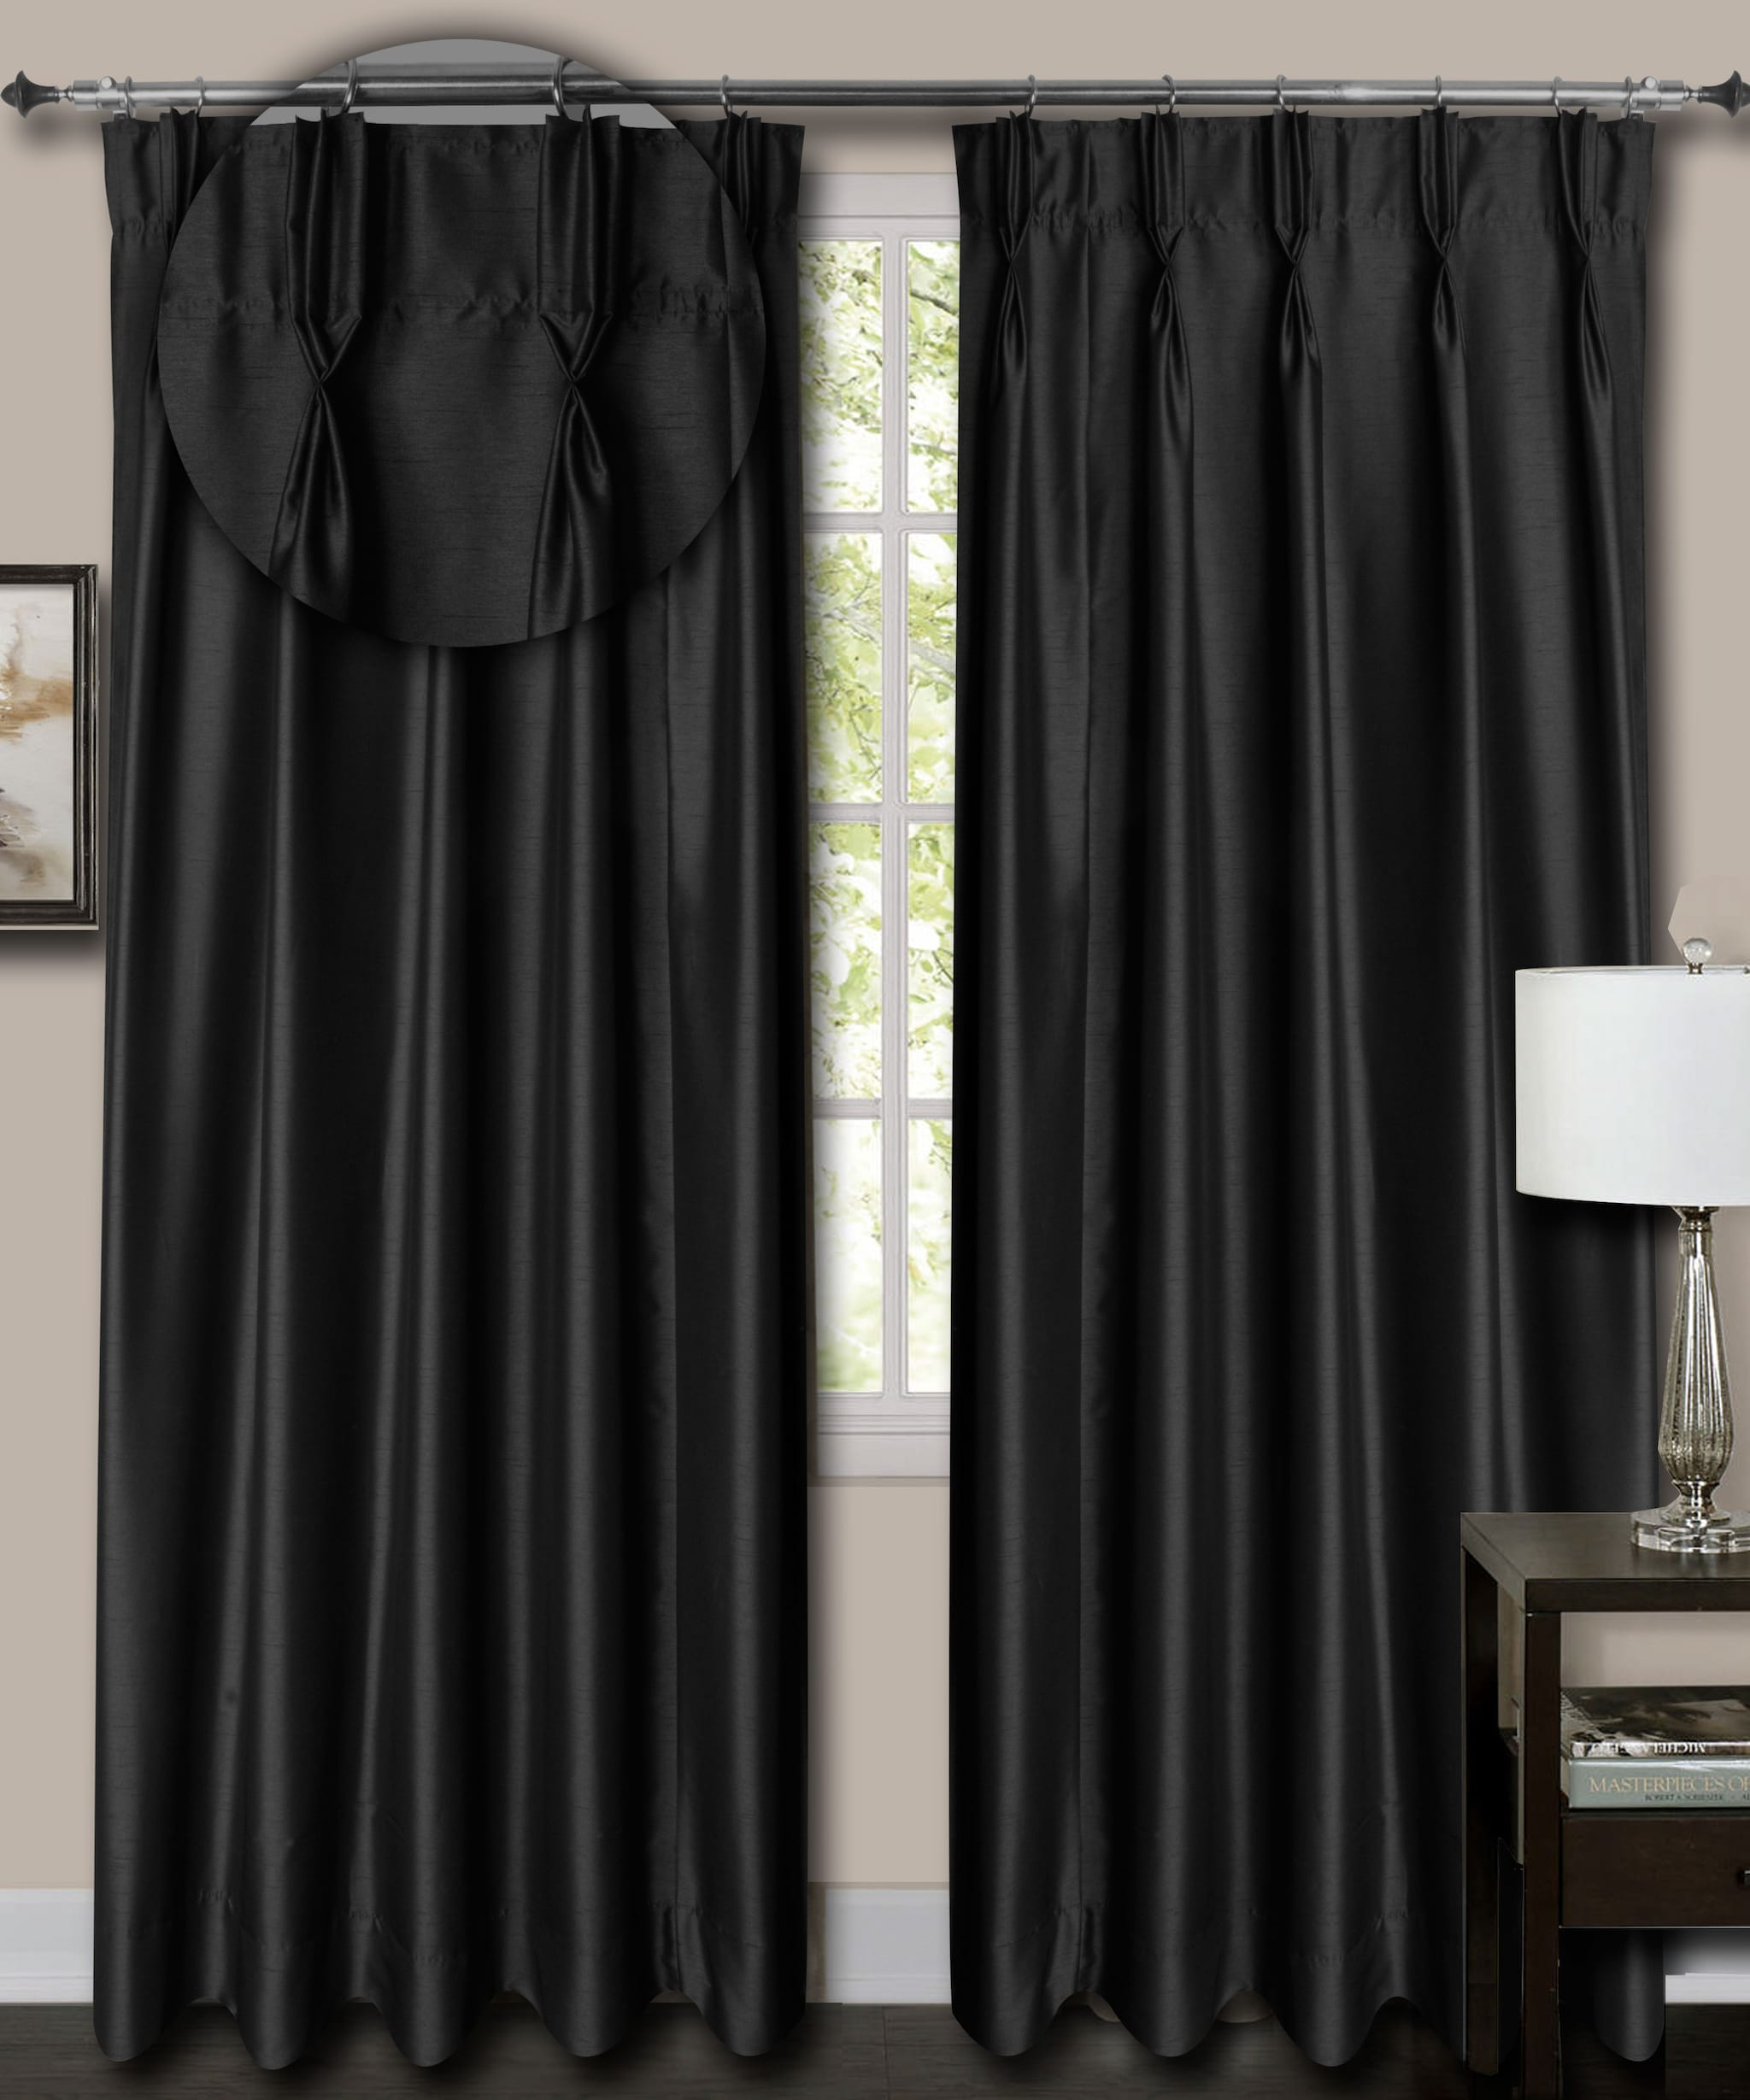 "French Pleat Top Black Faux Silk Dupioni Curtains. (24"" Wide,7 Feet Long,Blackout Lining)"